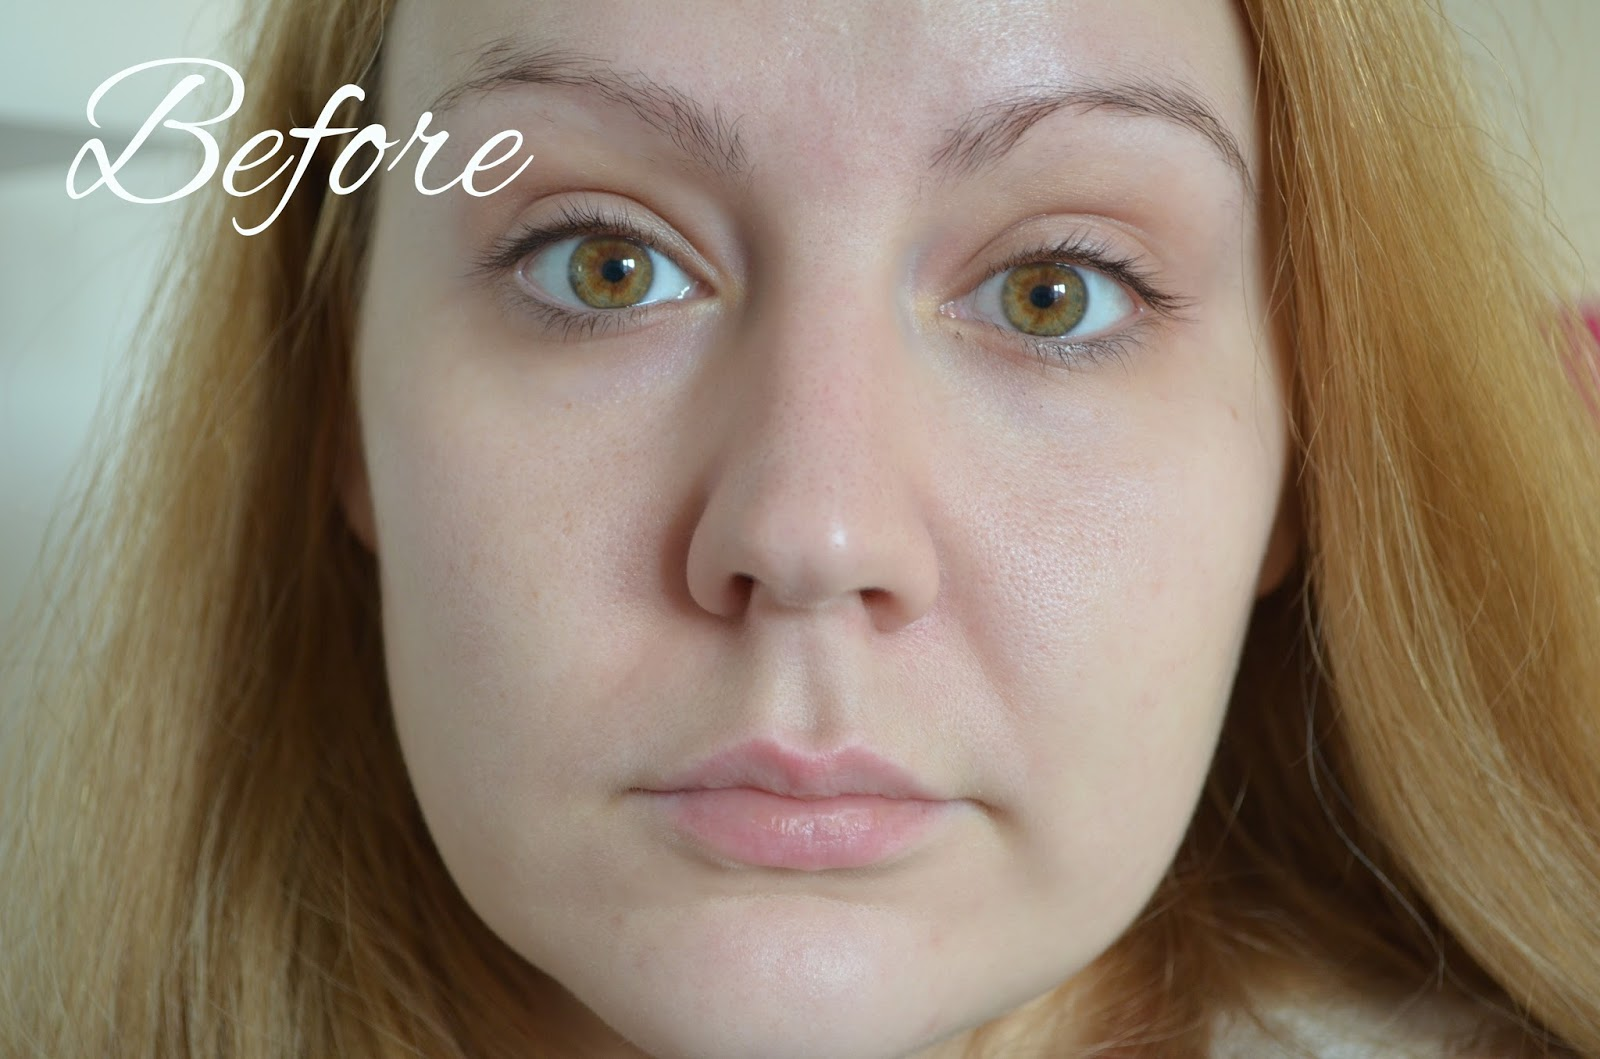 Ku mku review joik rejuvenating tightening chocolate facial mask you can see the results for yourself on the before and after picture down below i feel like this mask makes my pores look smaller and also cleaner solutioingenieria Gallery